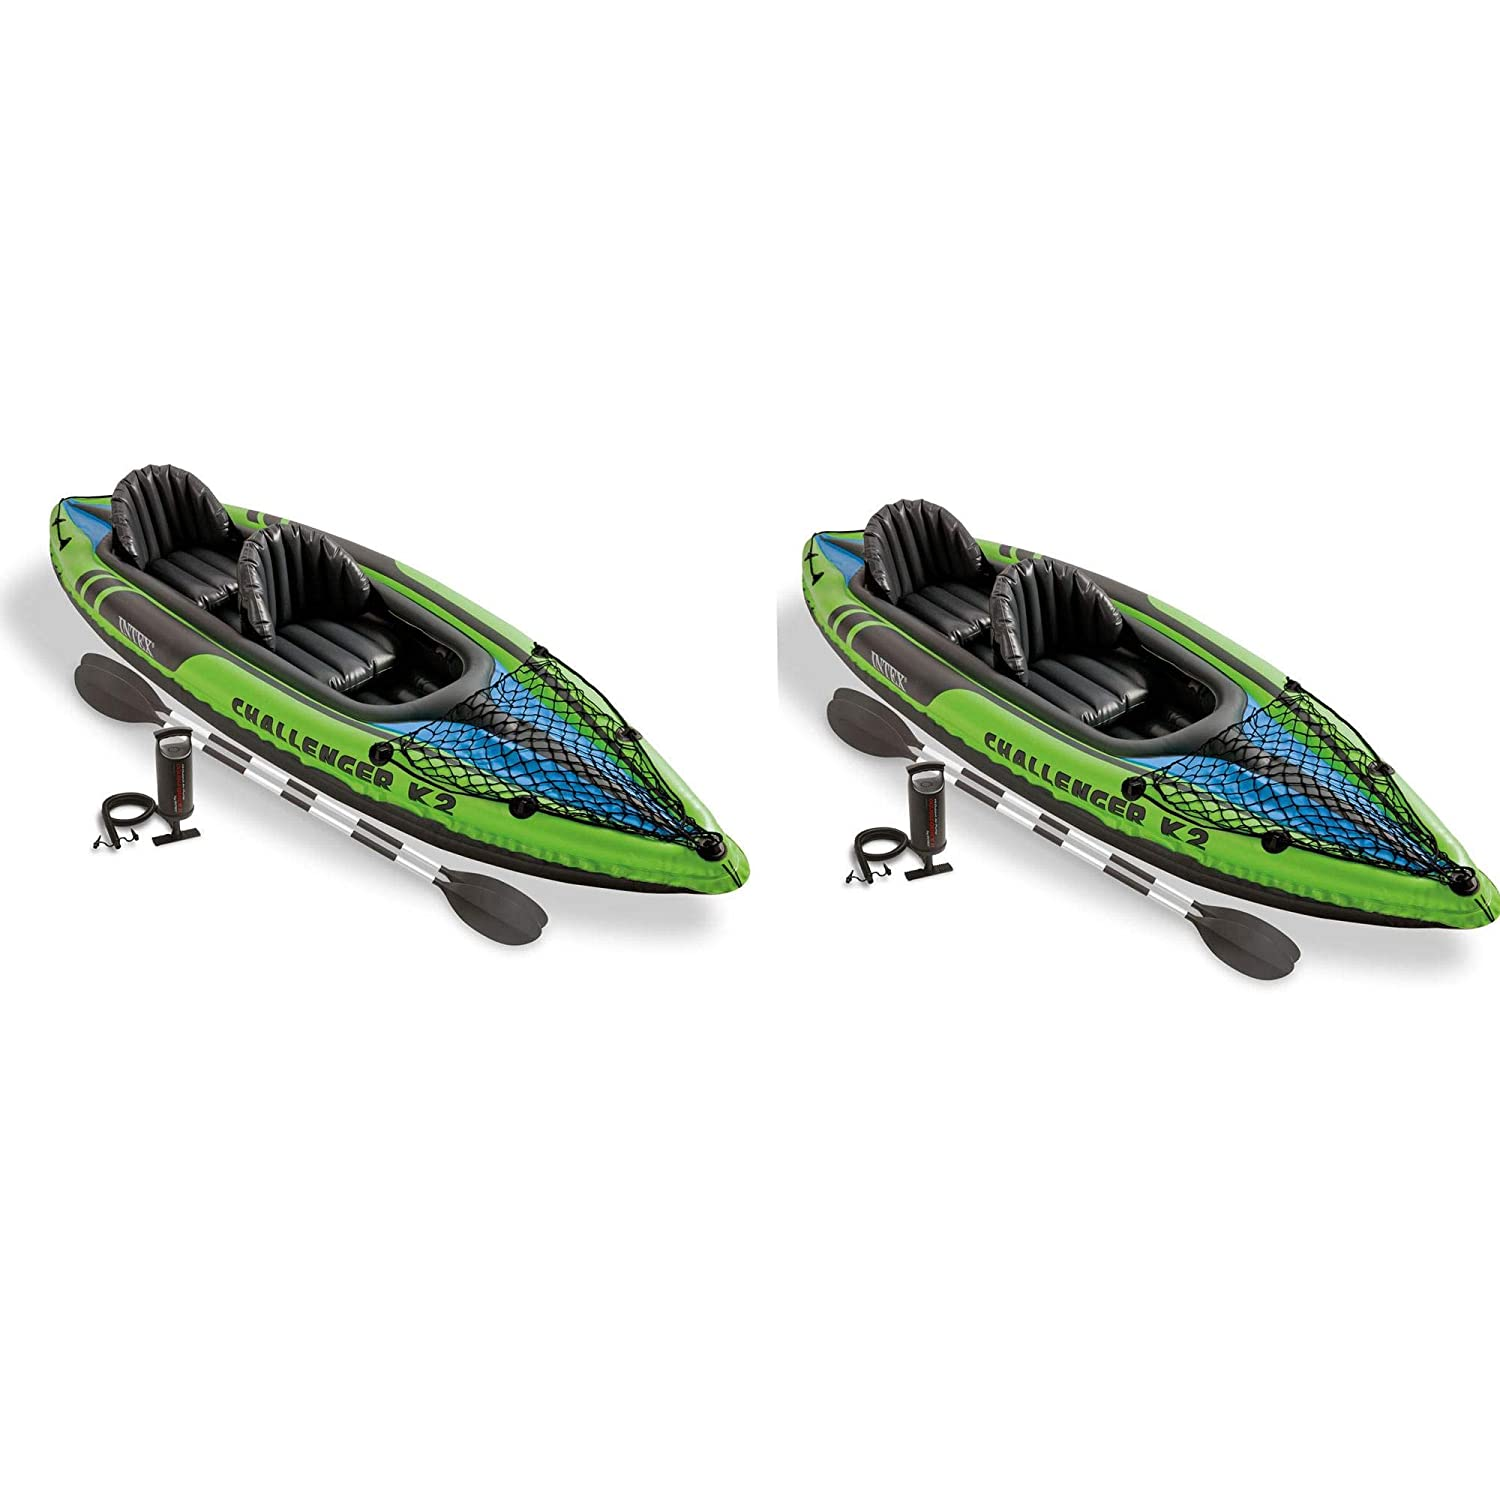 Intex Challenger K2 2-Person Inflatable Sporty Kayak Oars And Pump 2 Pack